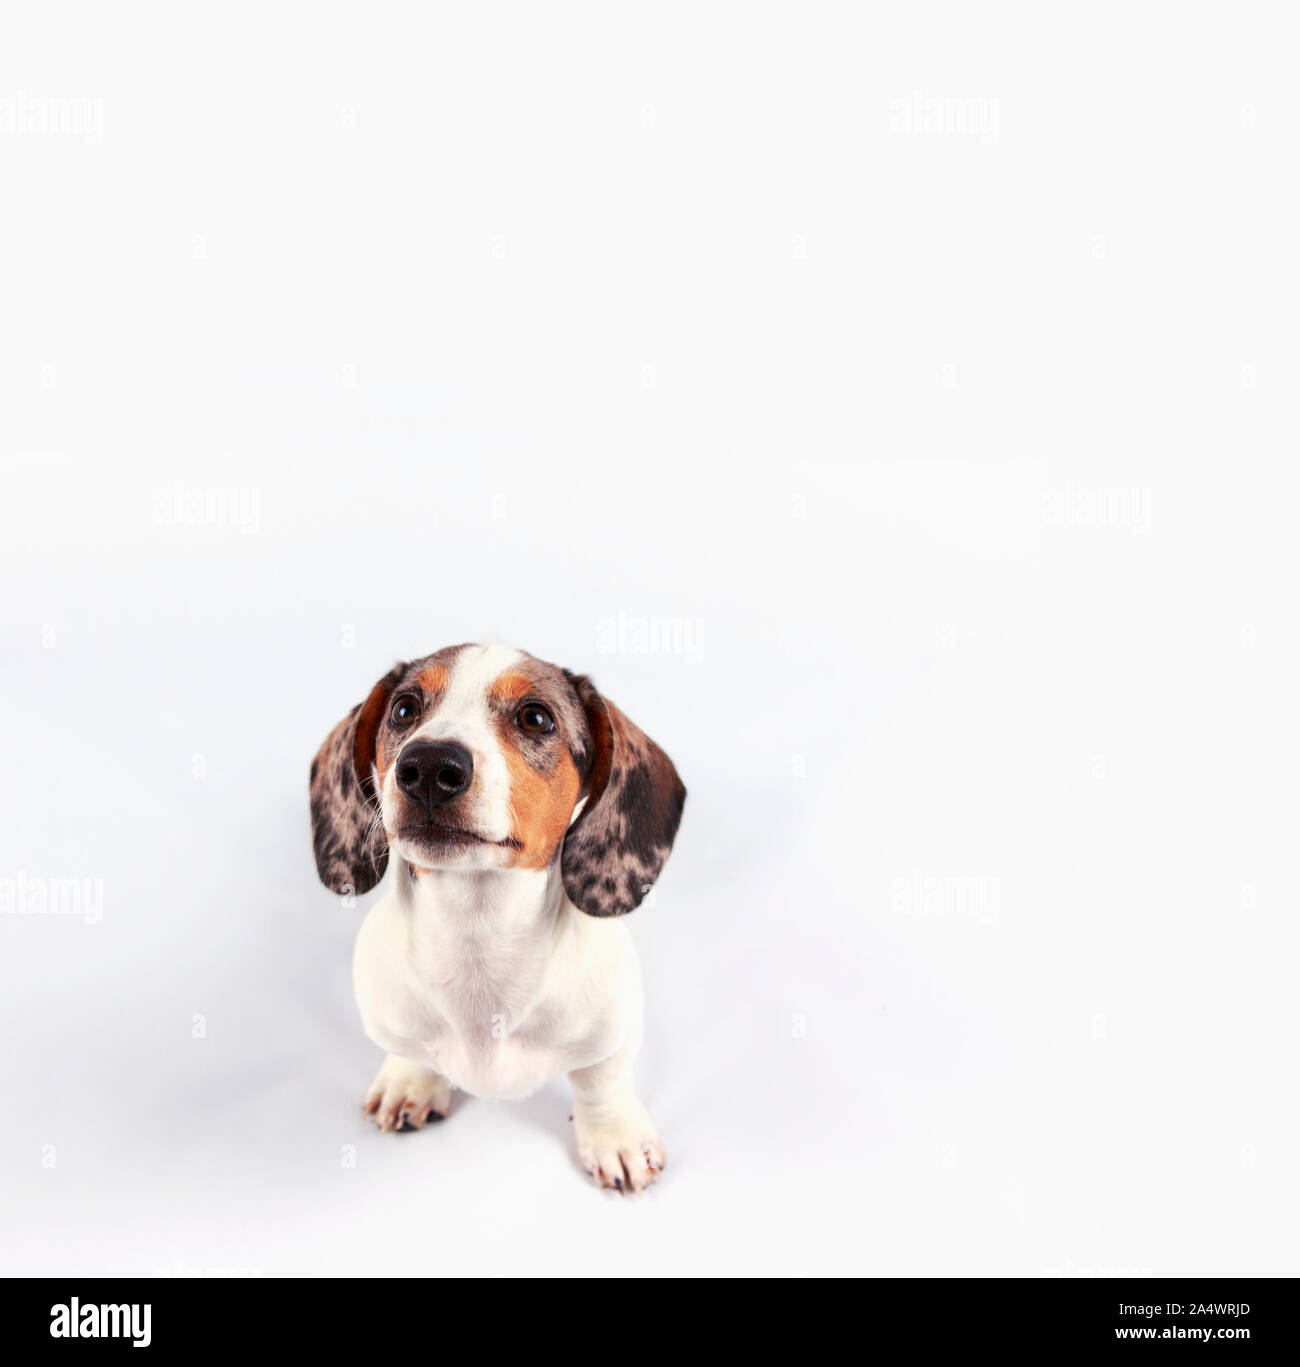 Little Cute Dachshund Puppy Dog Looking Funny On Plain White Background Stock Photo Alamy